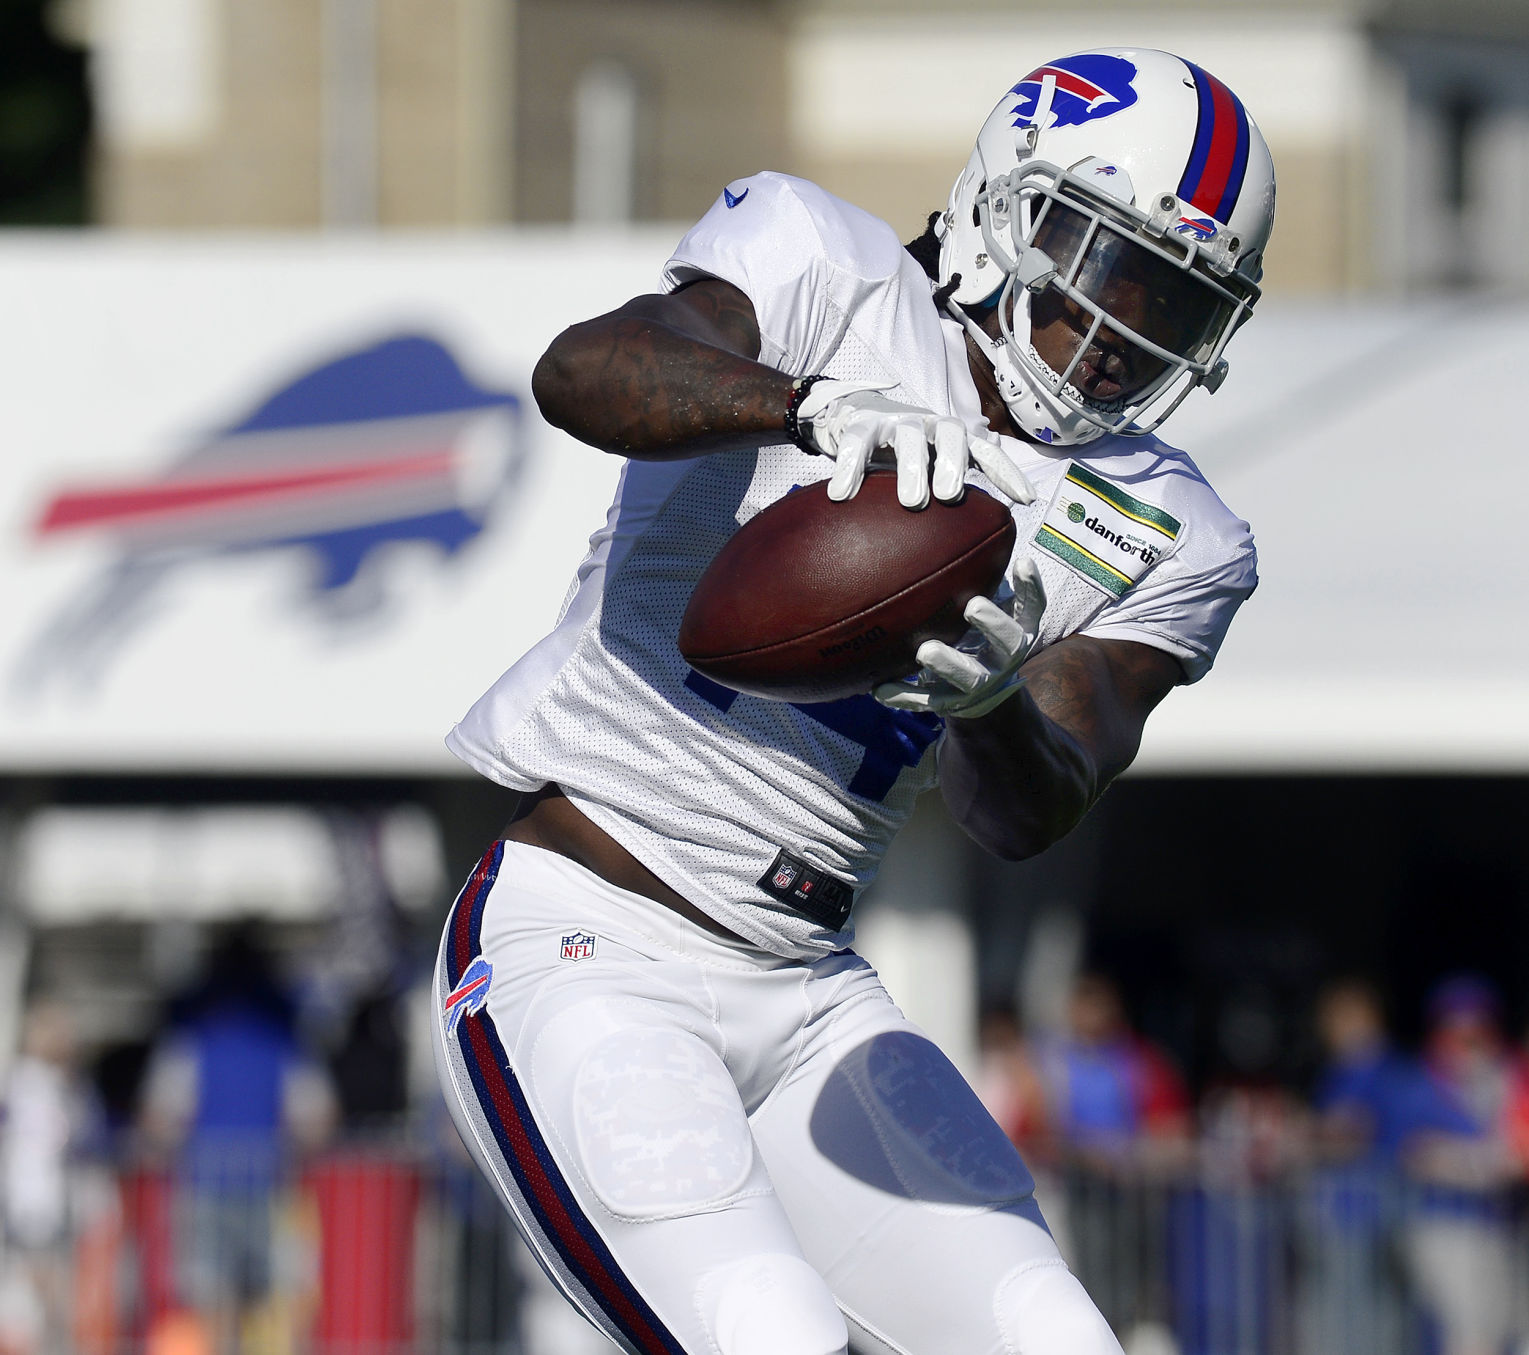 Bills Trade Sammy Watkins and Get Jordan Matthews From Eagles